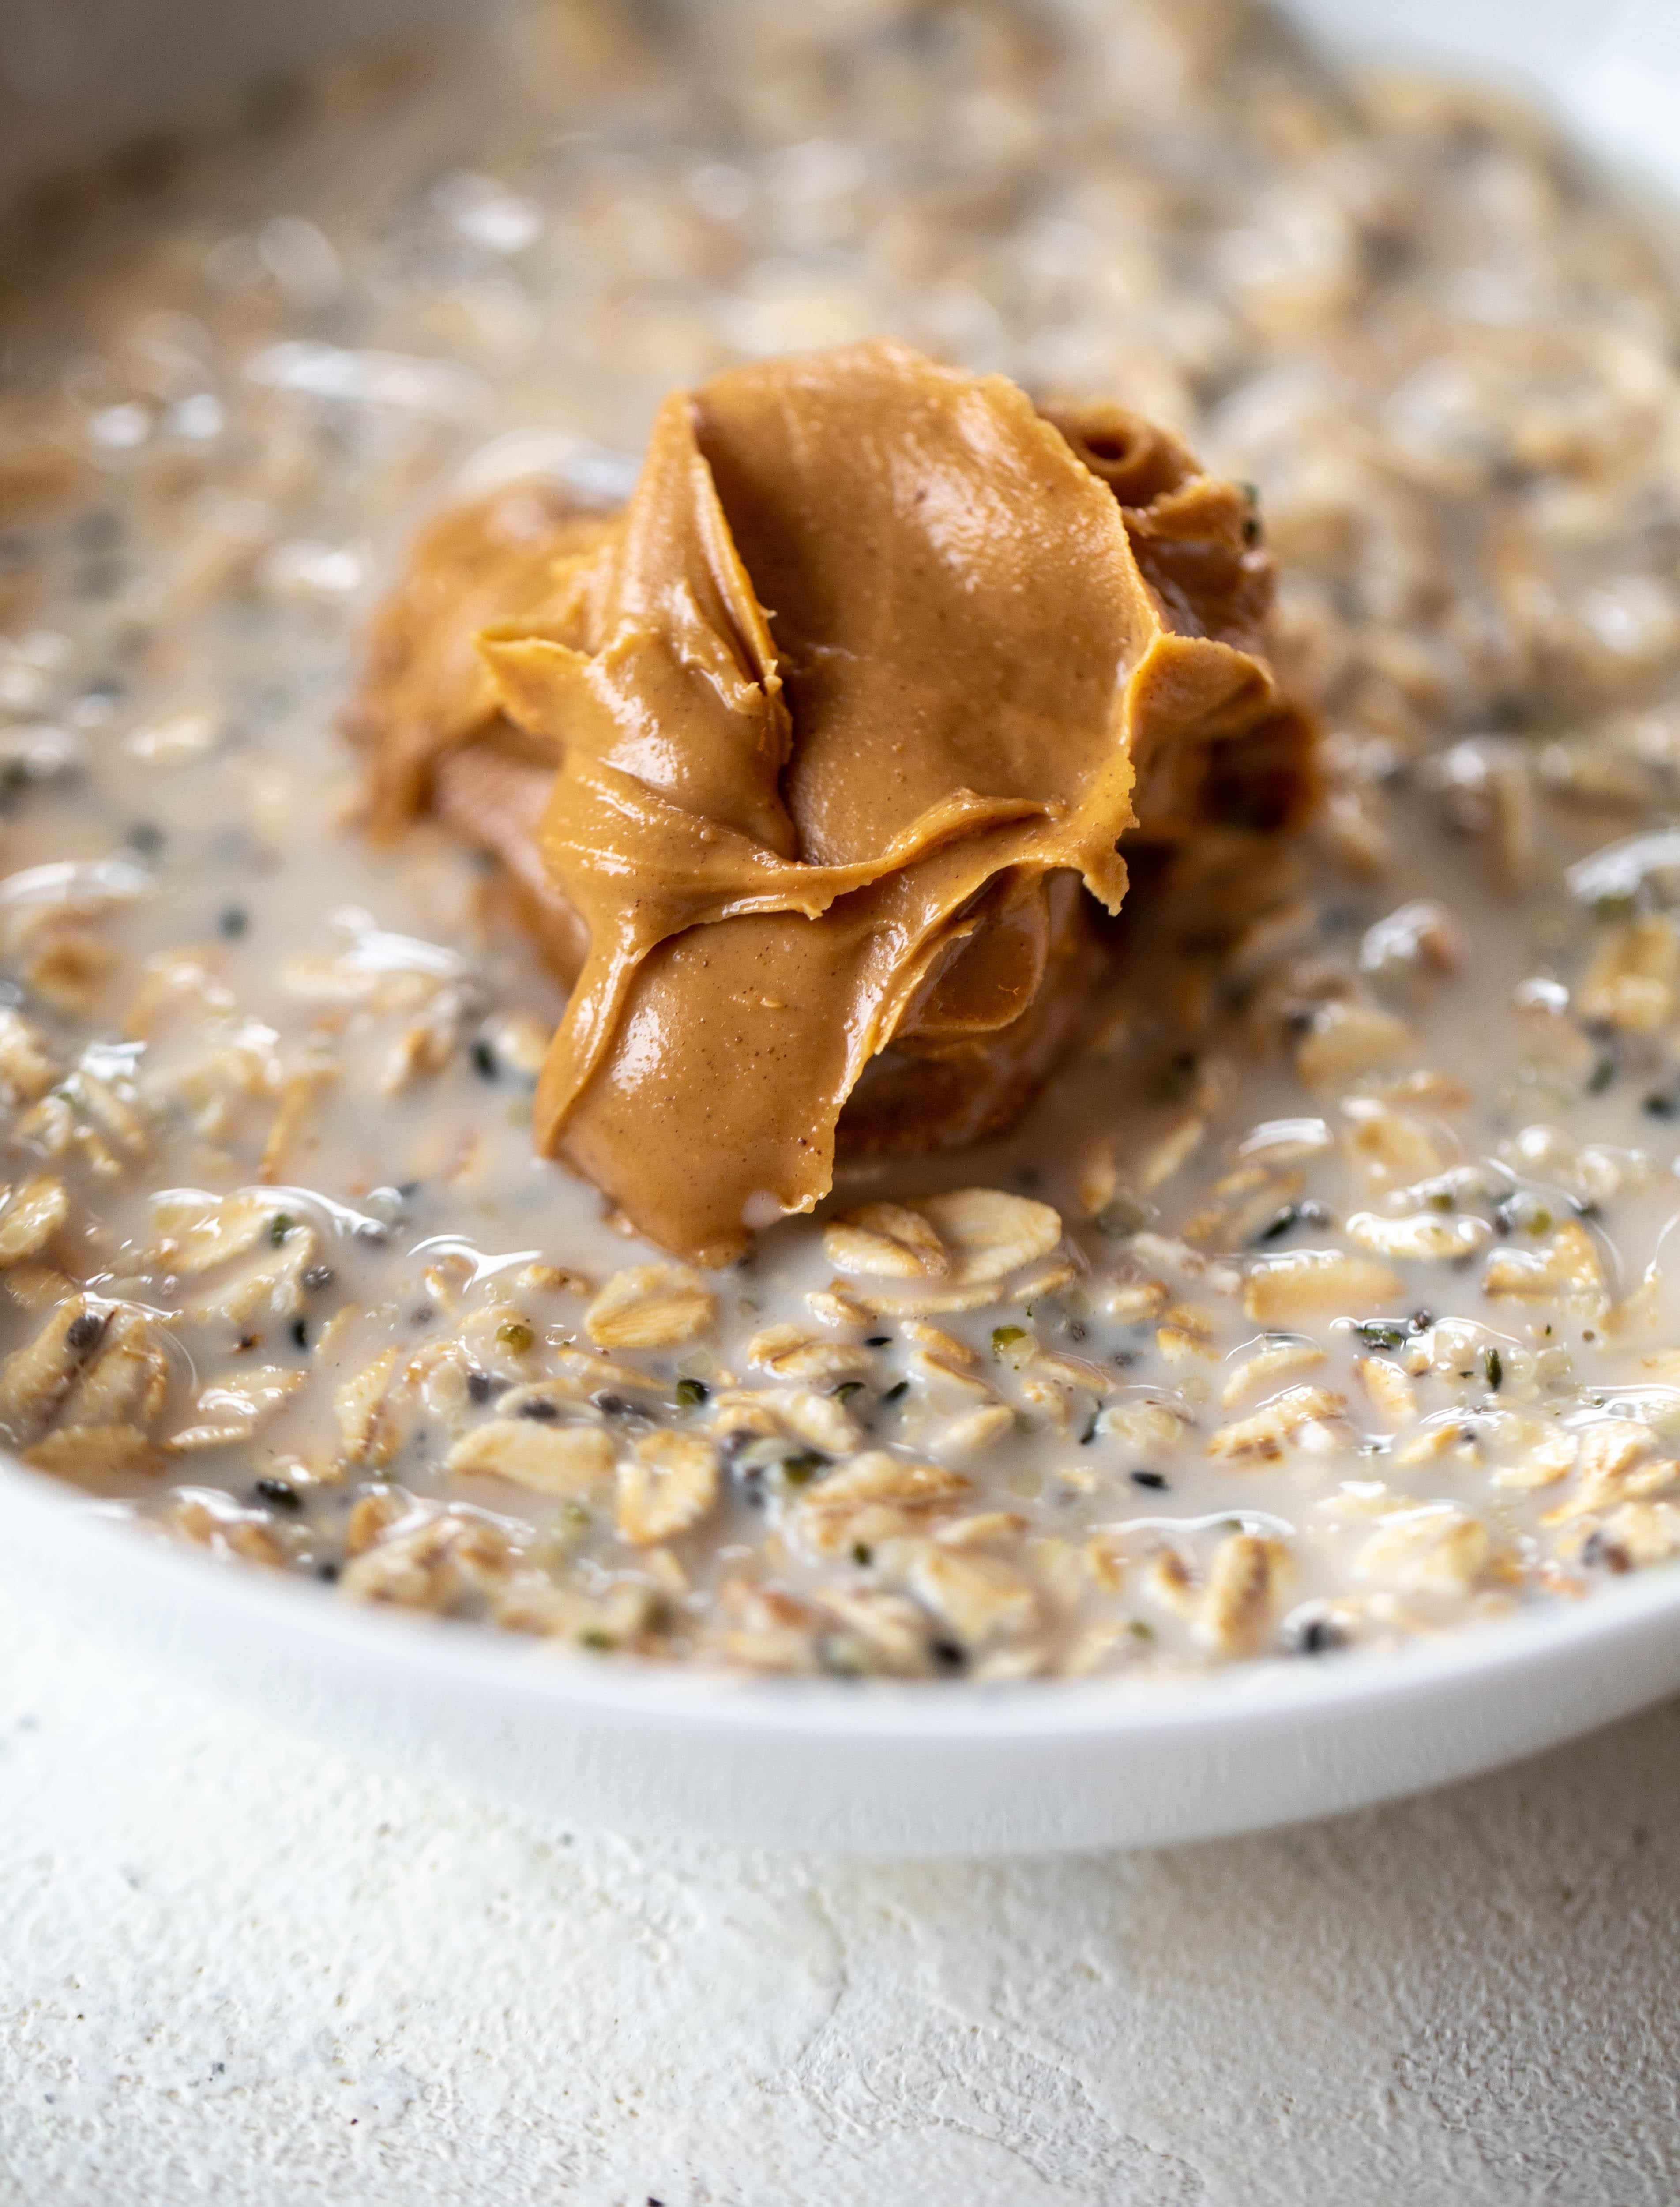 These peanut butter overnight oats are my favorite breakfast! Top with 5 minute grain free chocolate granola and it's the best combo ever.